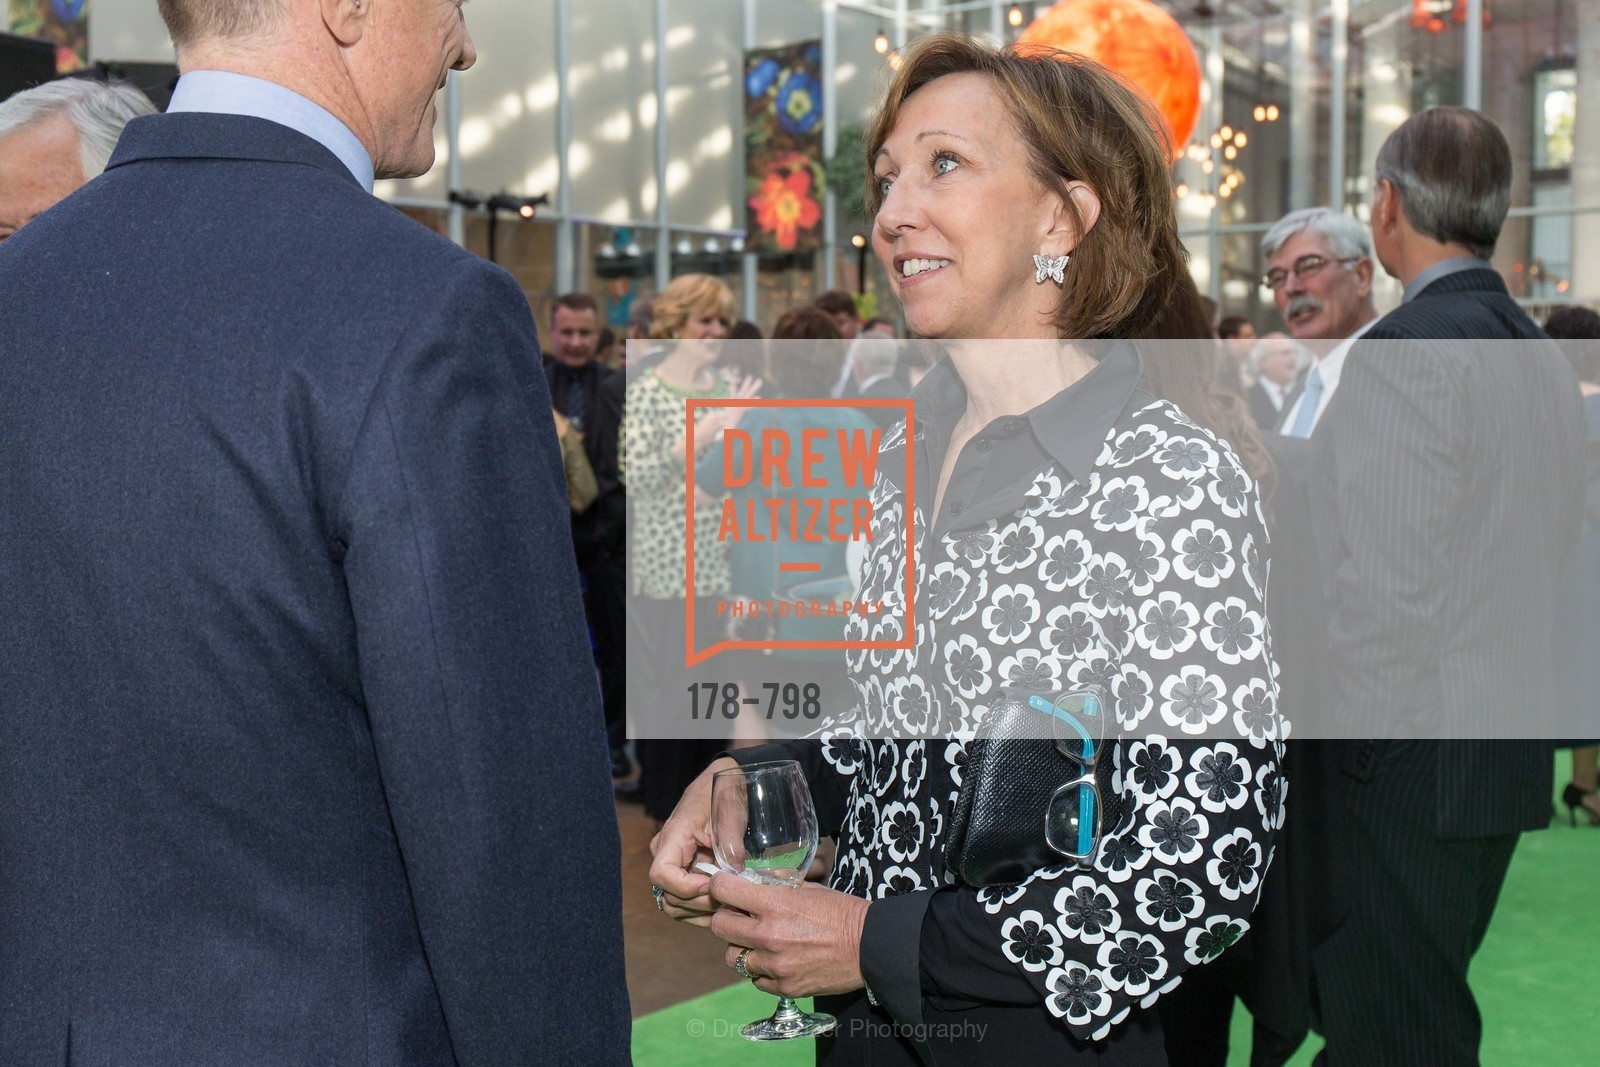 Janice Barger, CALIFORNIA ACADEMY OF SCIENCES - Big Bang Gala 2015, US, April 23rd, 2015,Drew Altizer, Drew Altizer Photography, full-service agency, private events, San Francisco photographer, photographer california